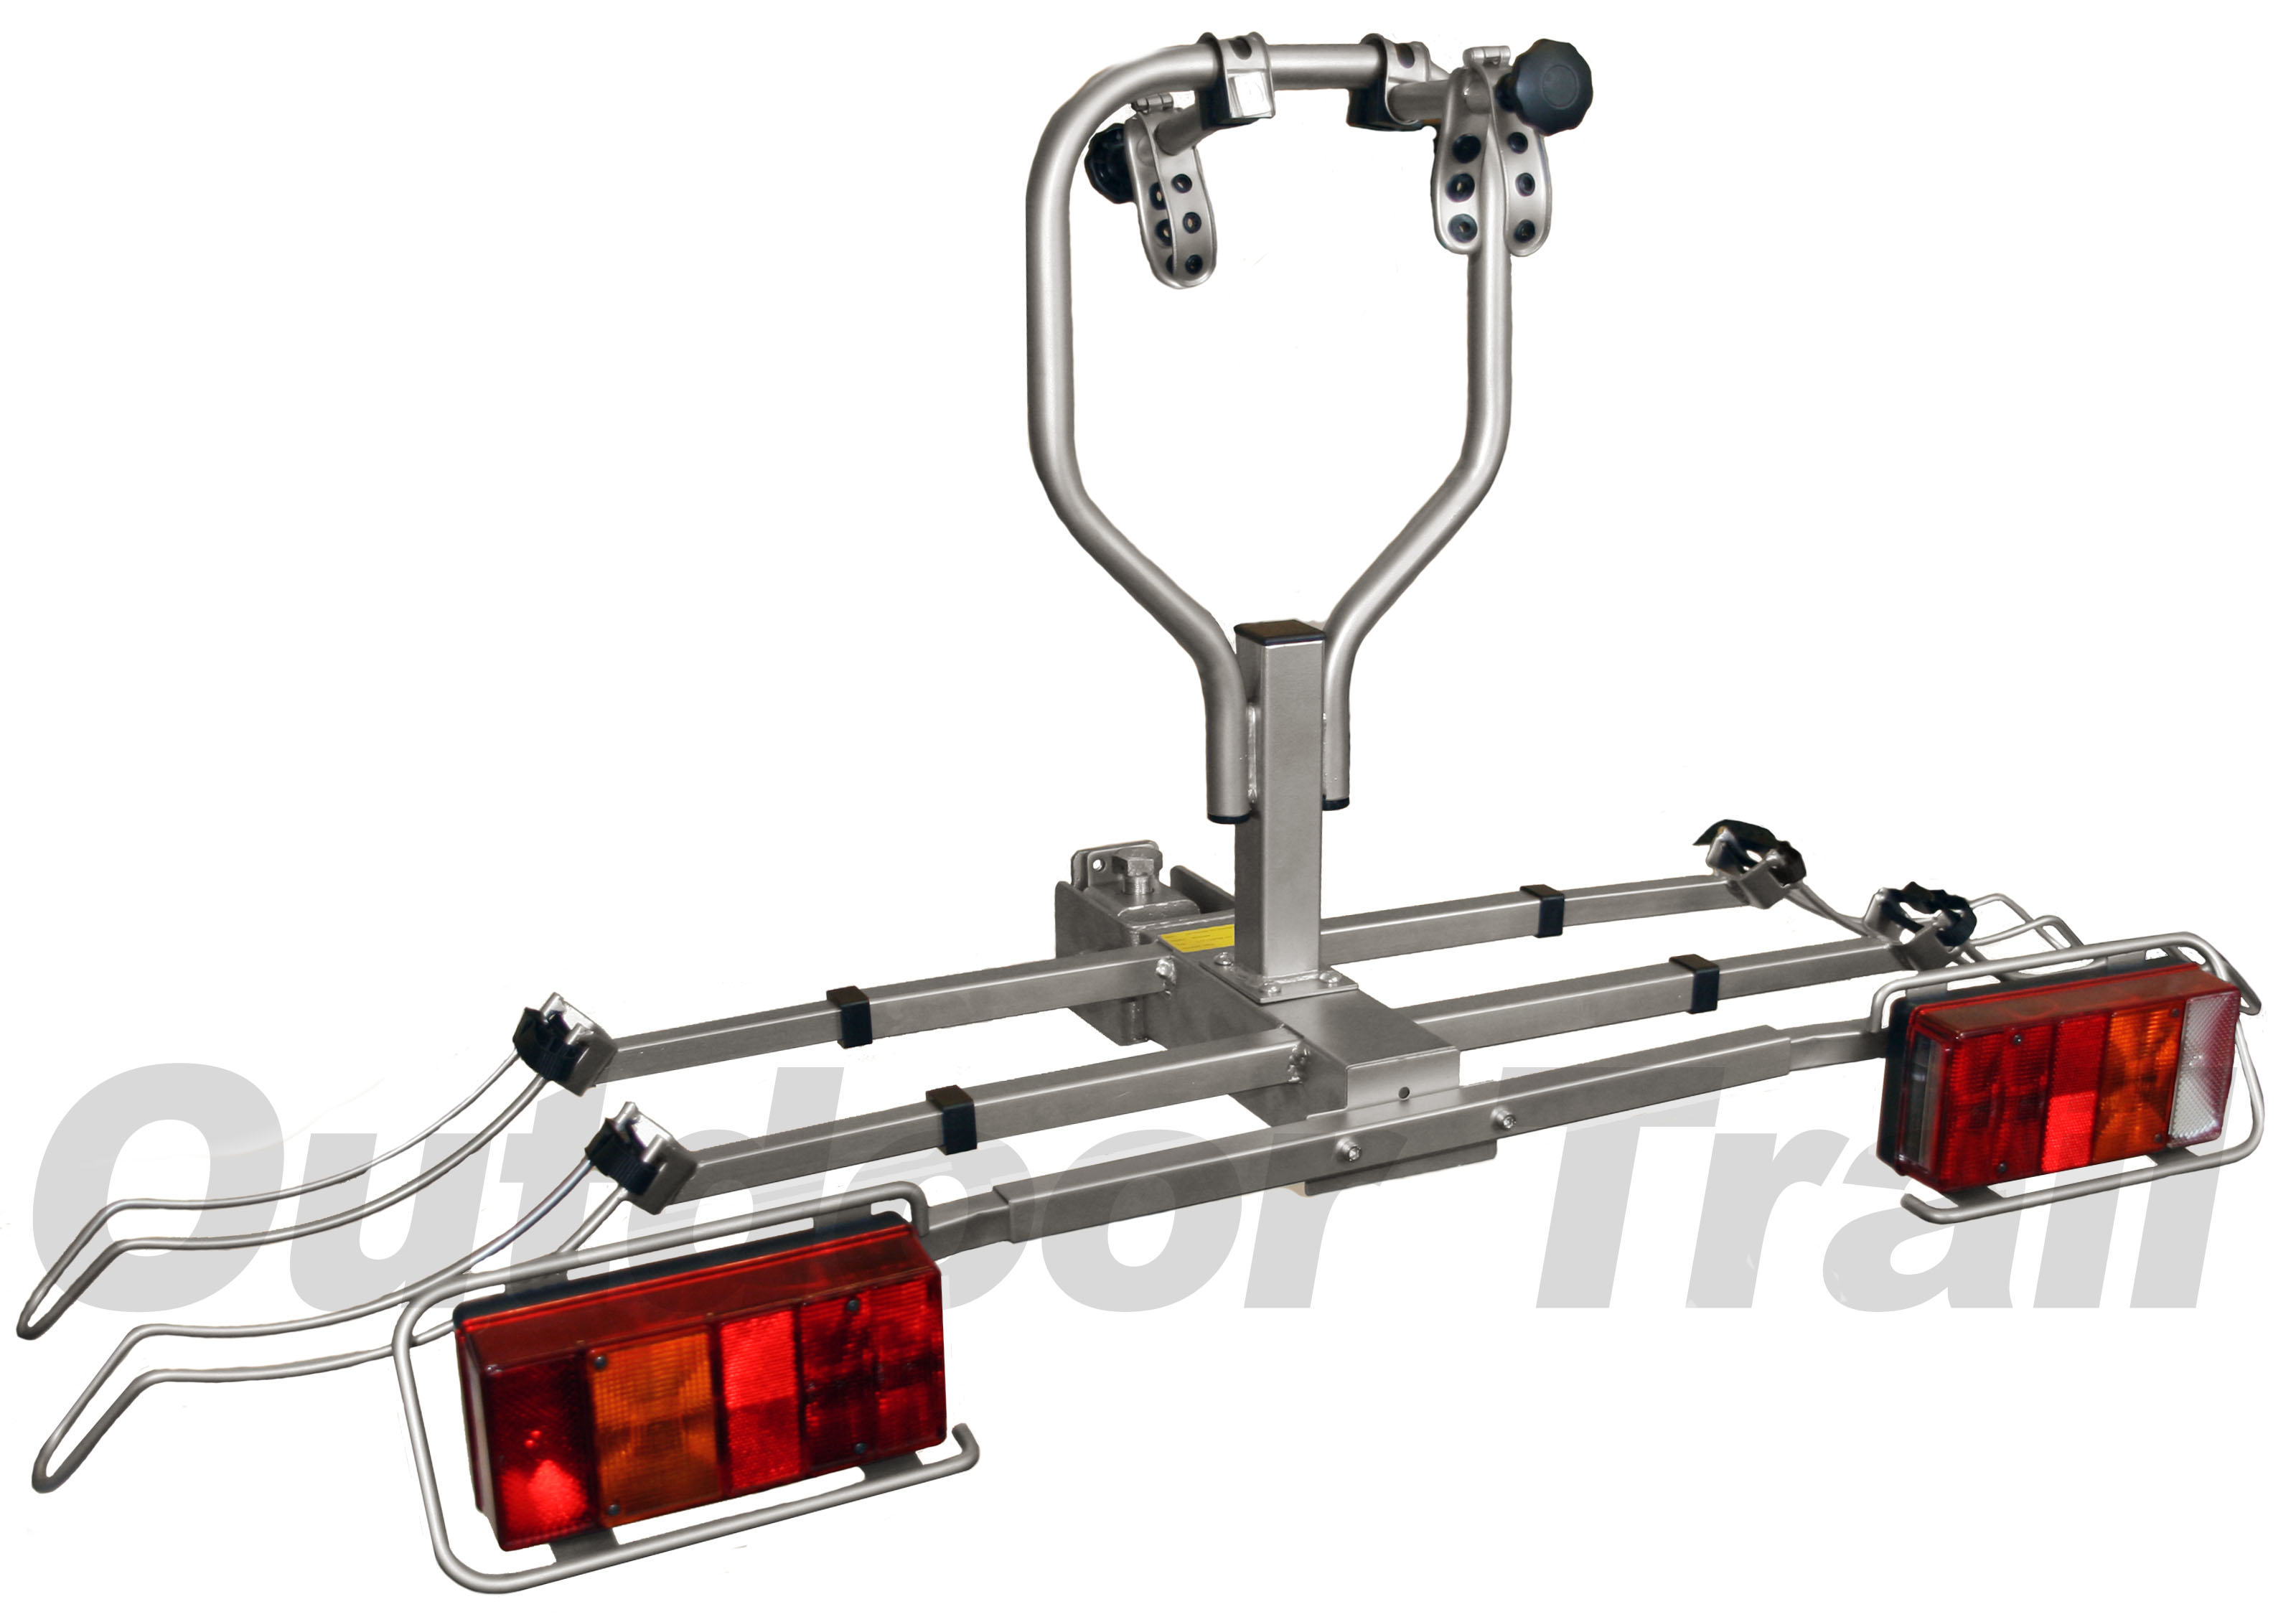 Towbar Mounted 2 Cycle Tiltable Bike Rack Carrier With Lighting Board